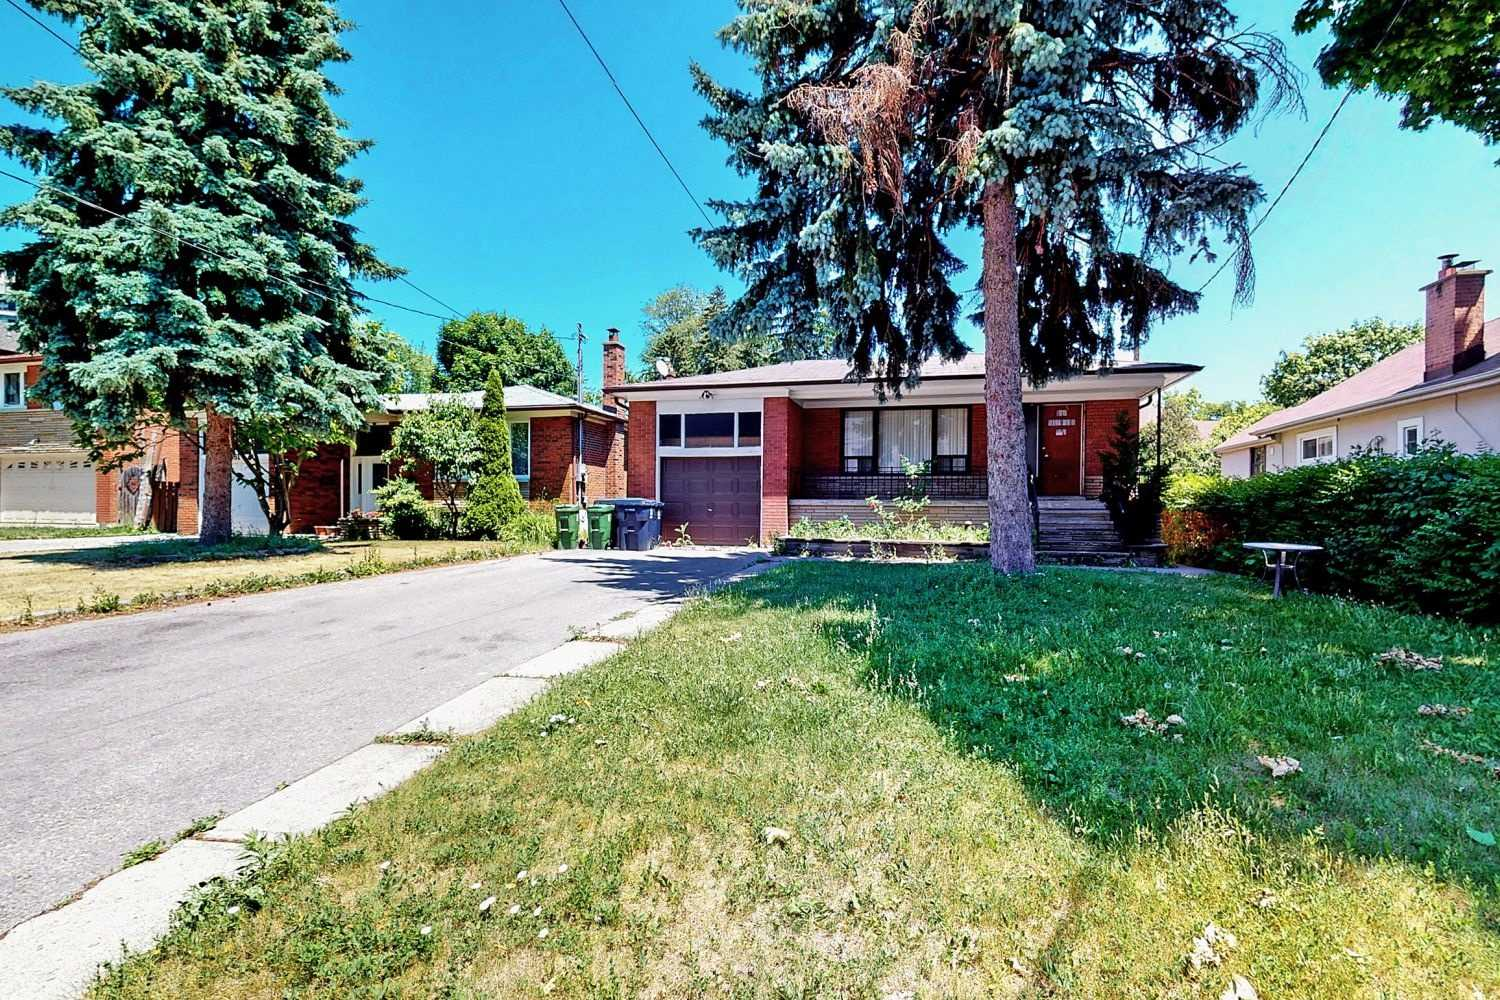 449 Kenneth Ave - C4803991 - $1,499,000